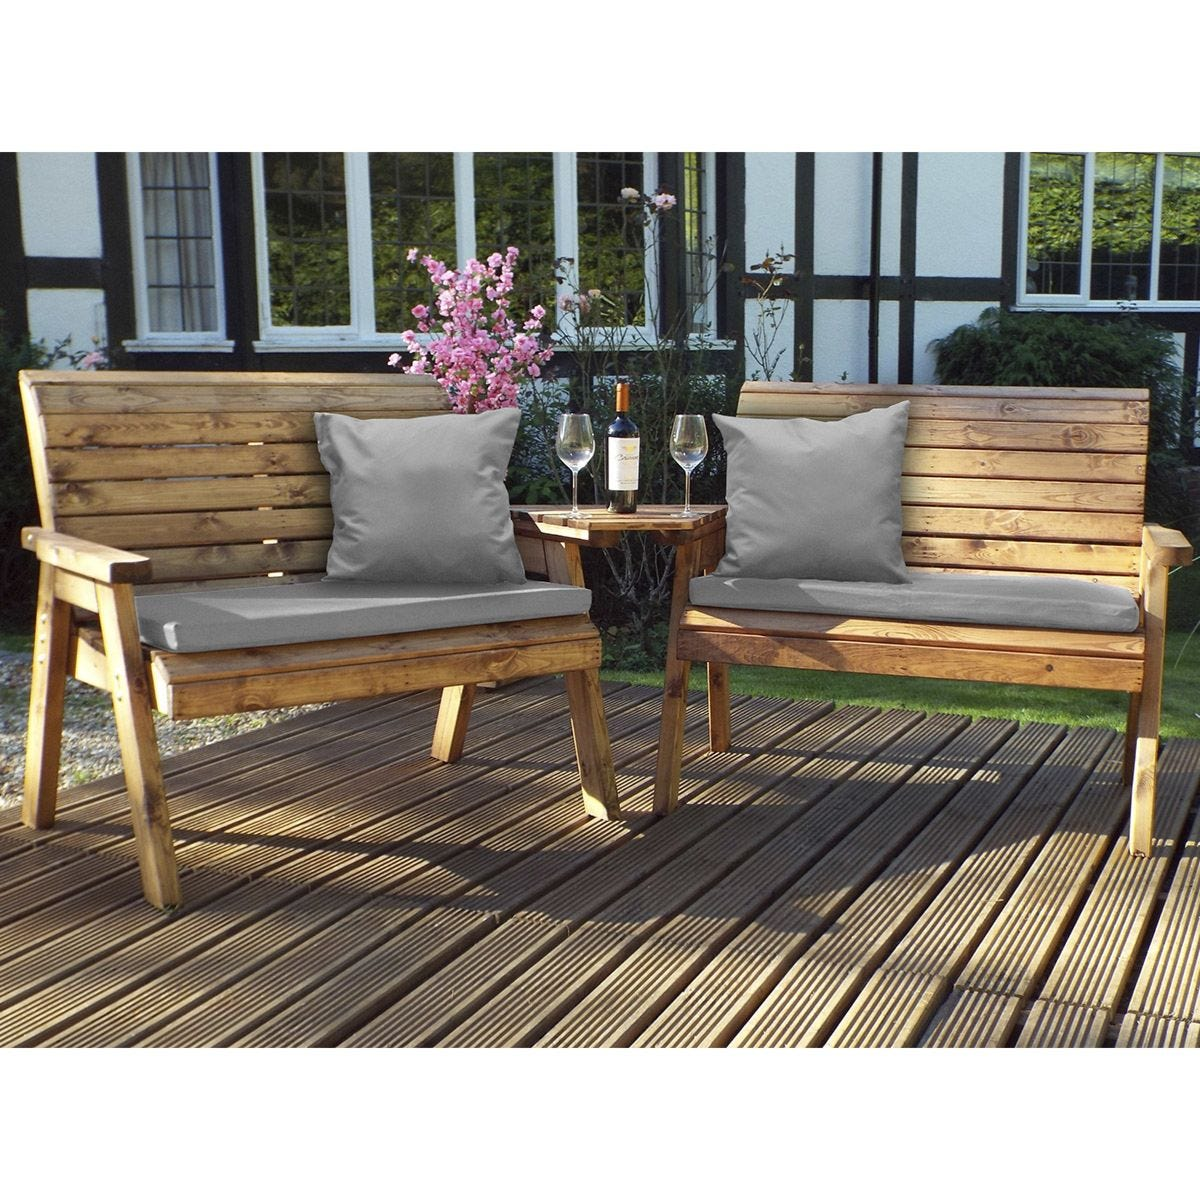 Charles Taylor Twin Bench Set Angled with Grey Cushions